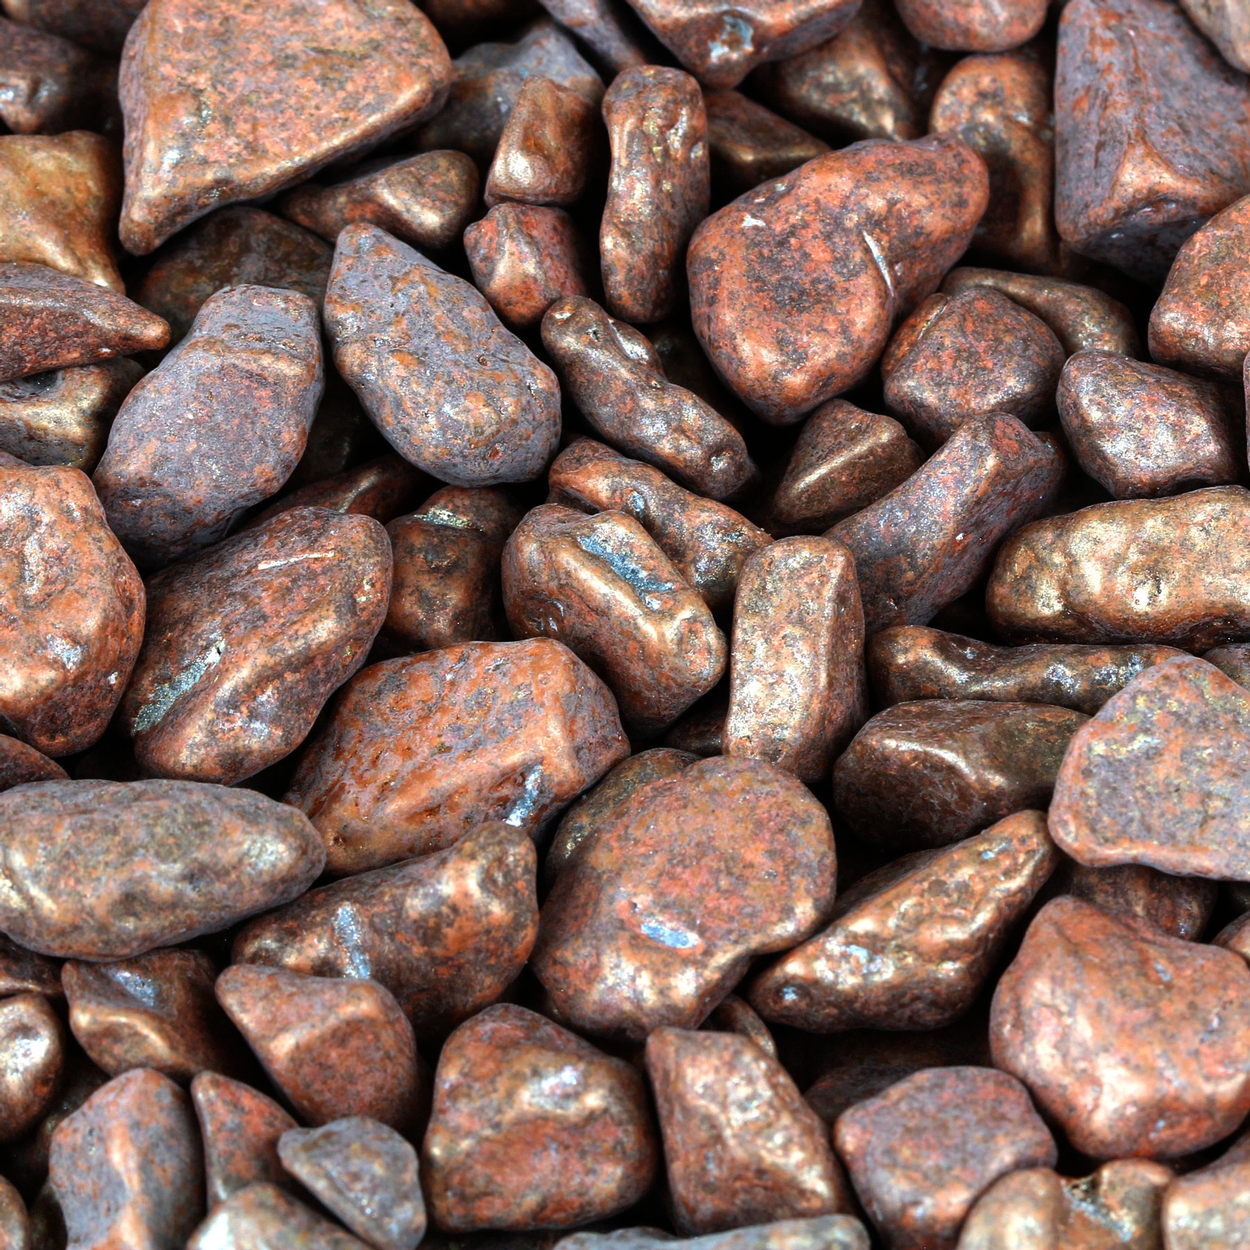 Chocolate Rock Nuggets • Chocolate Candy Delights • Buy in Bulk By ...